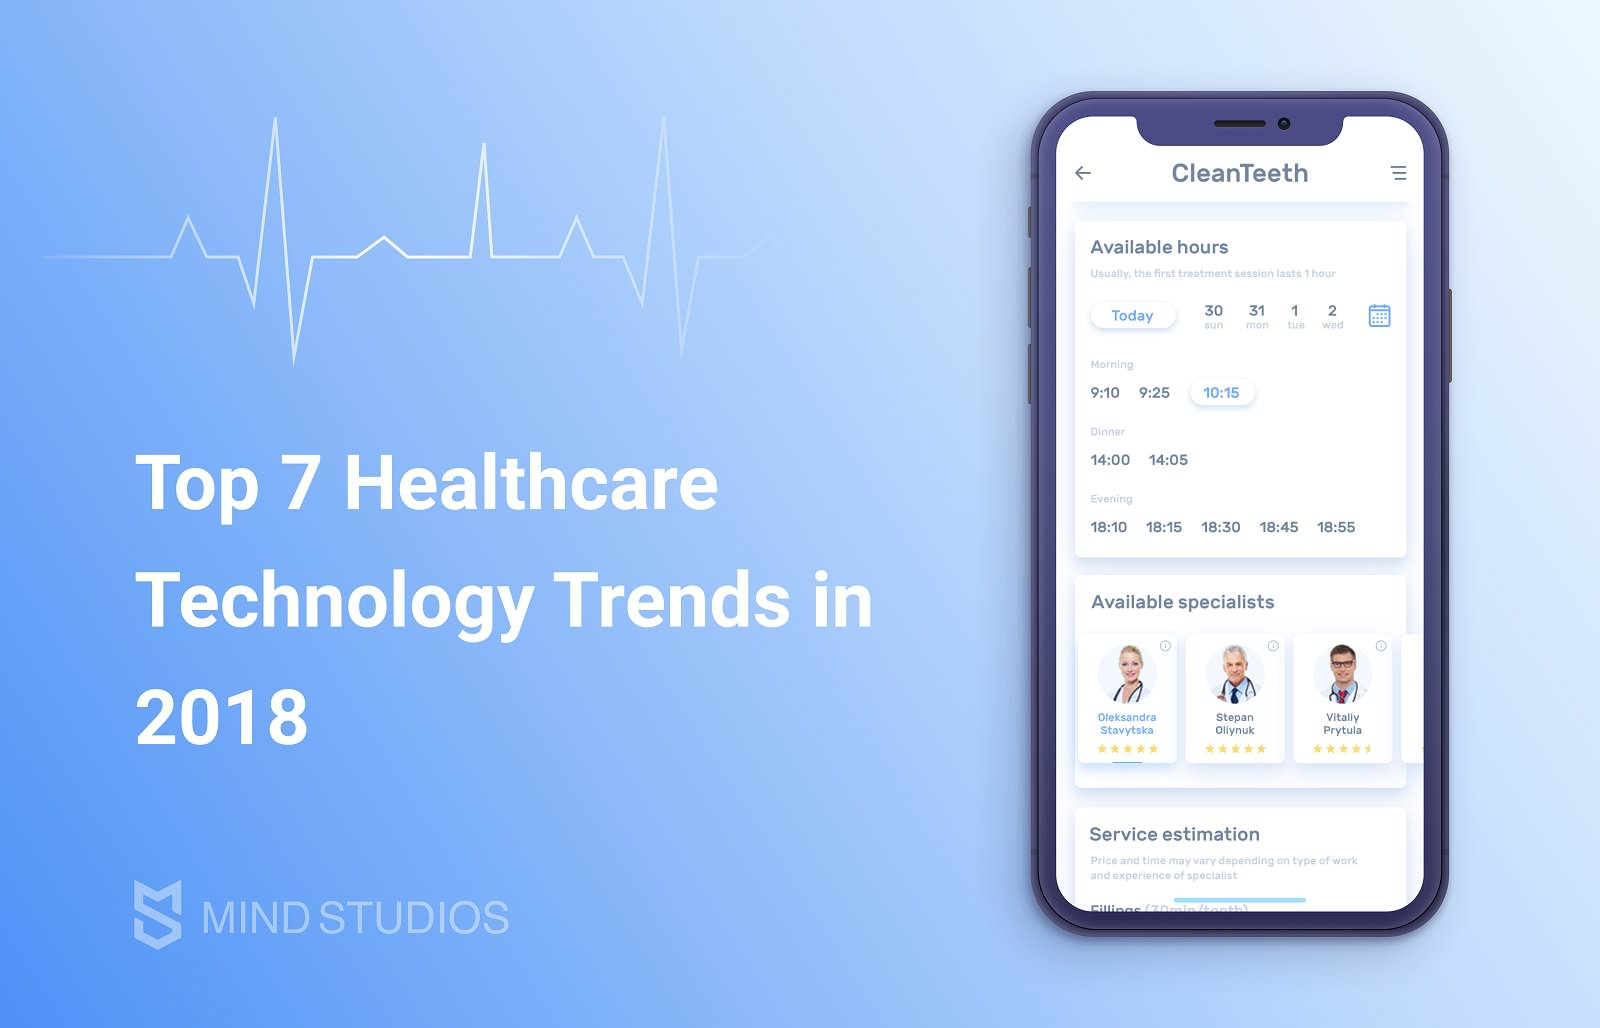 Top 7 Healthcare Technology Trends in 2019